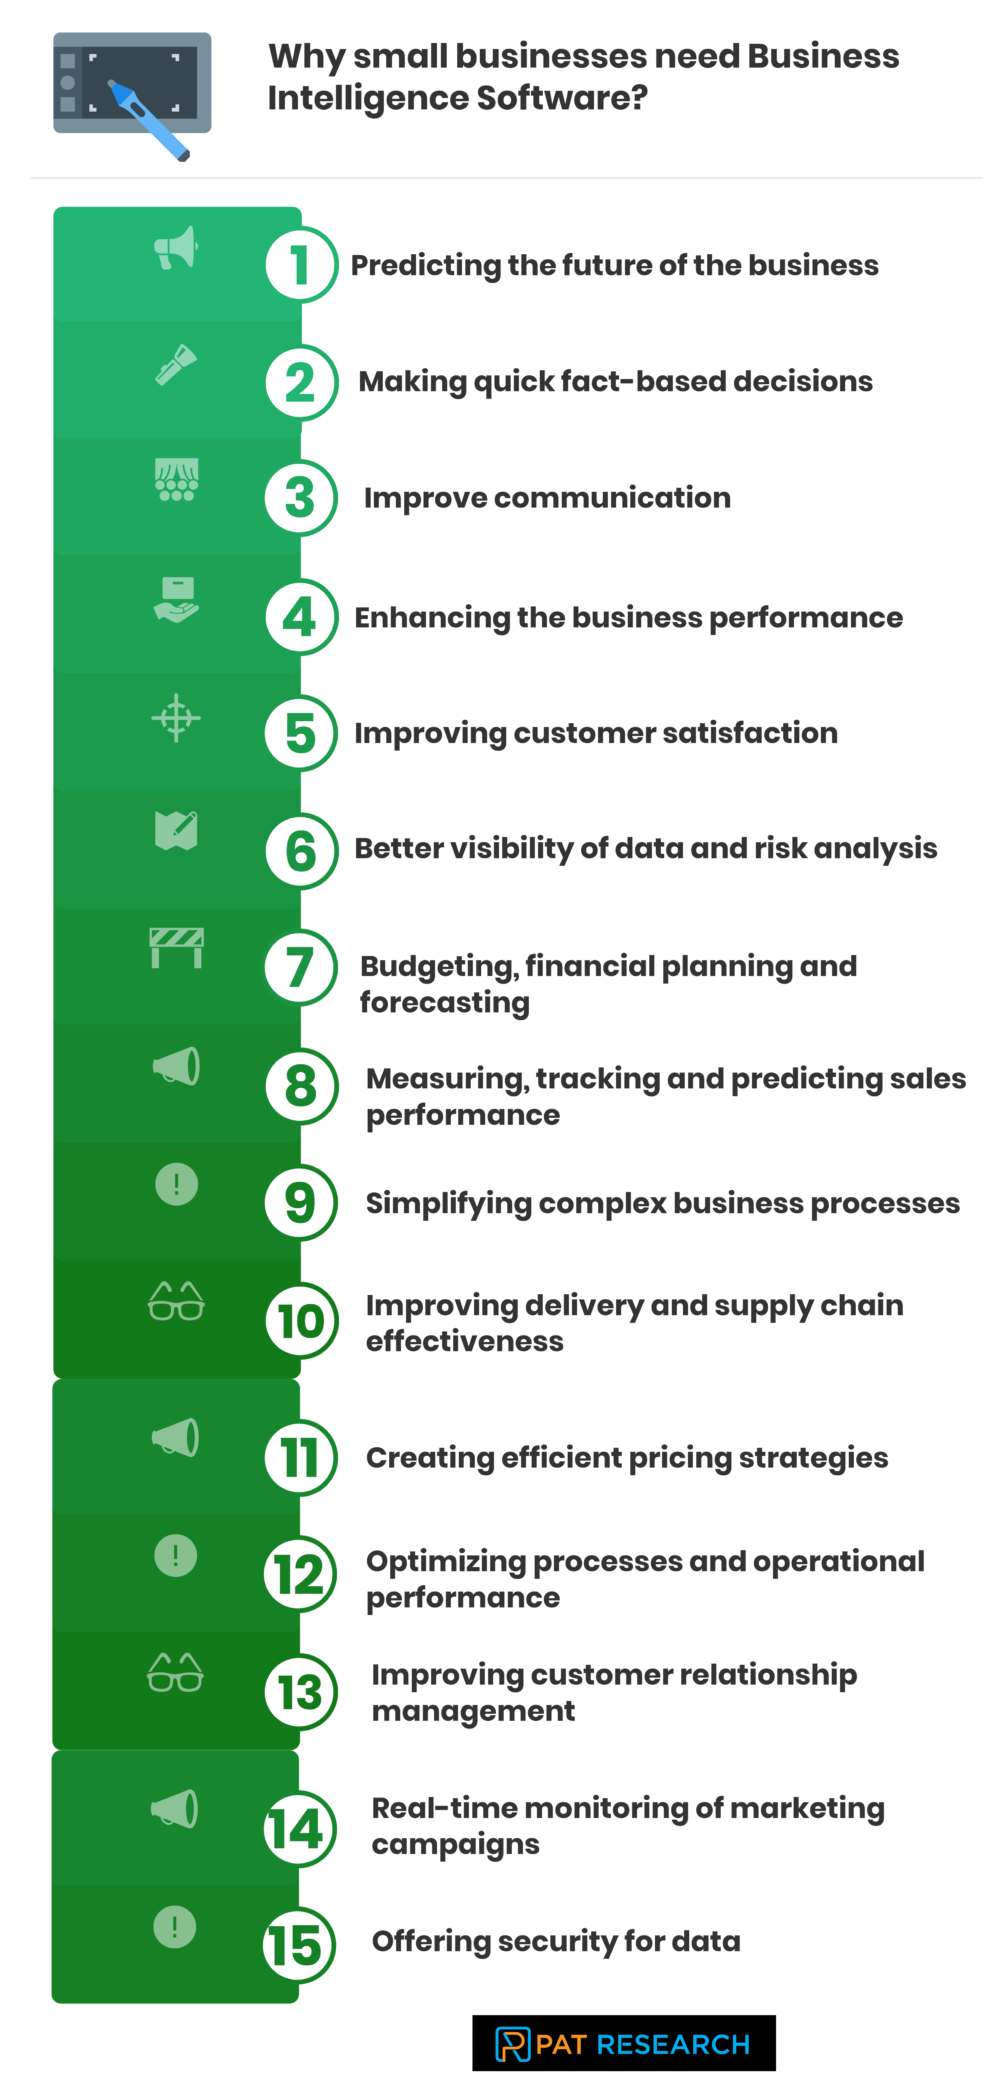 Why Small Businesses Need Business Intelligence Software